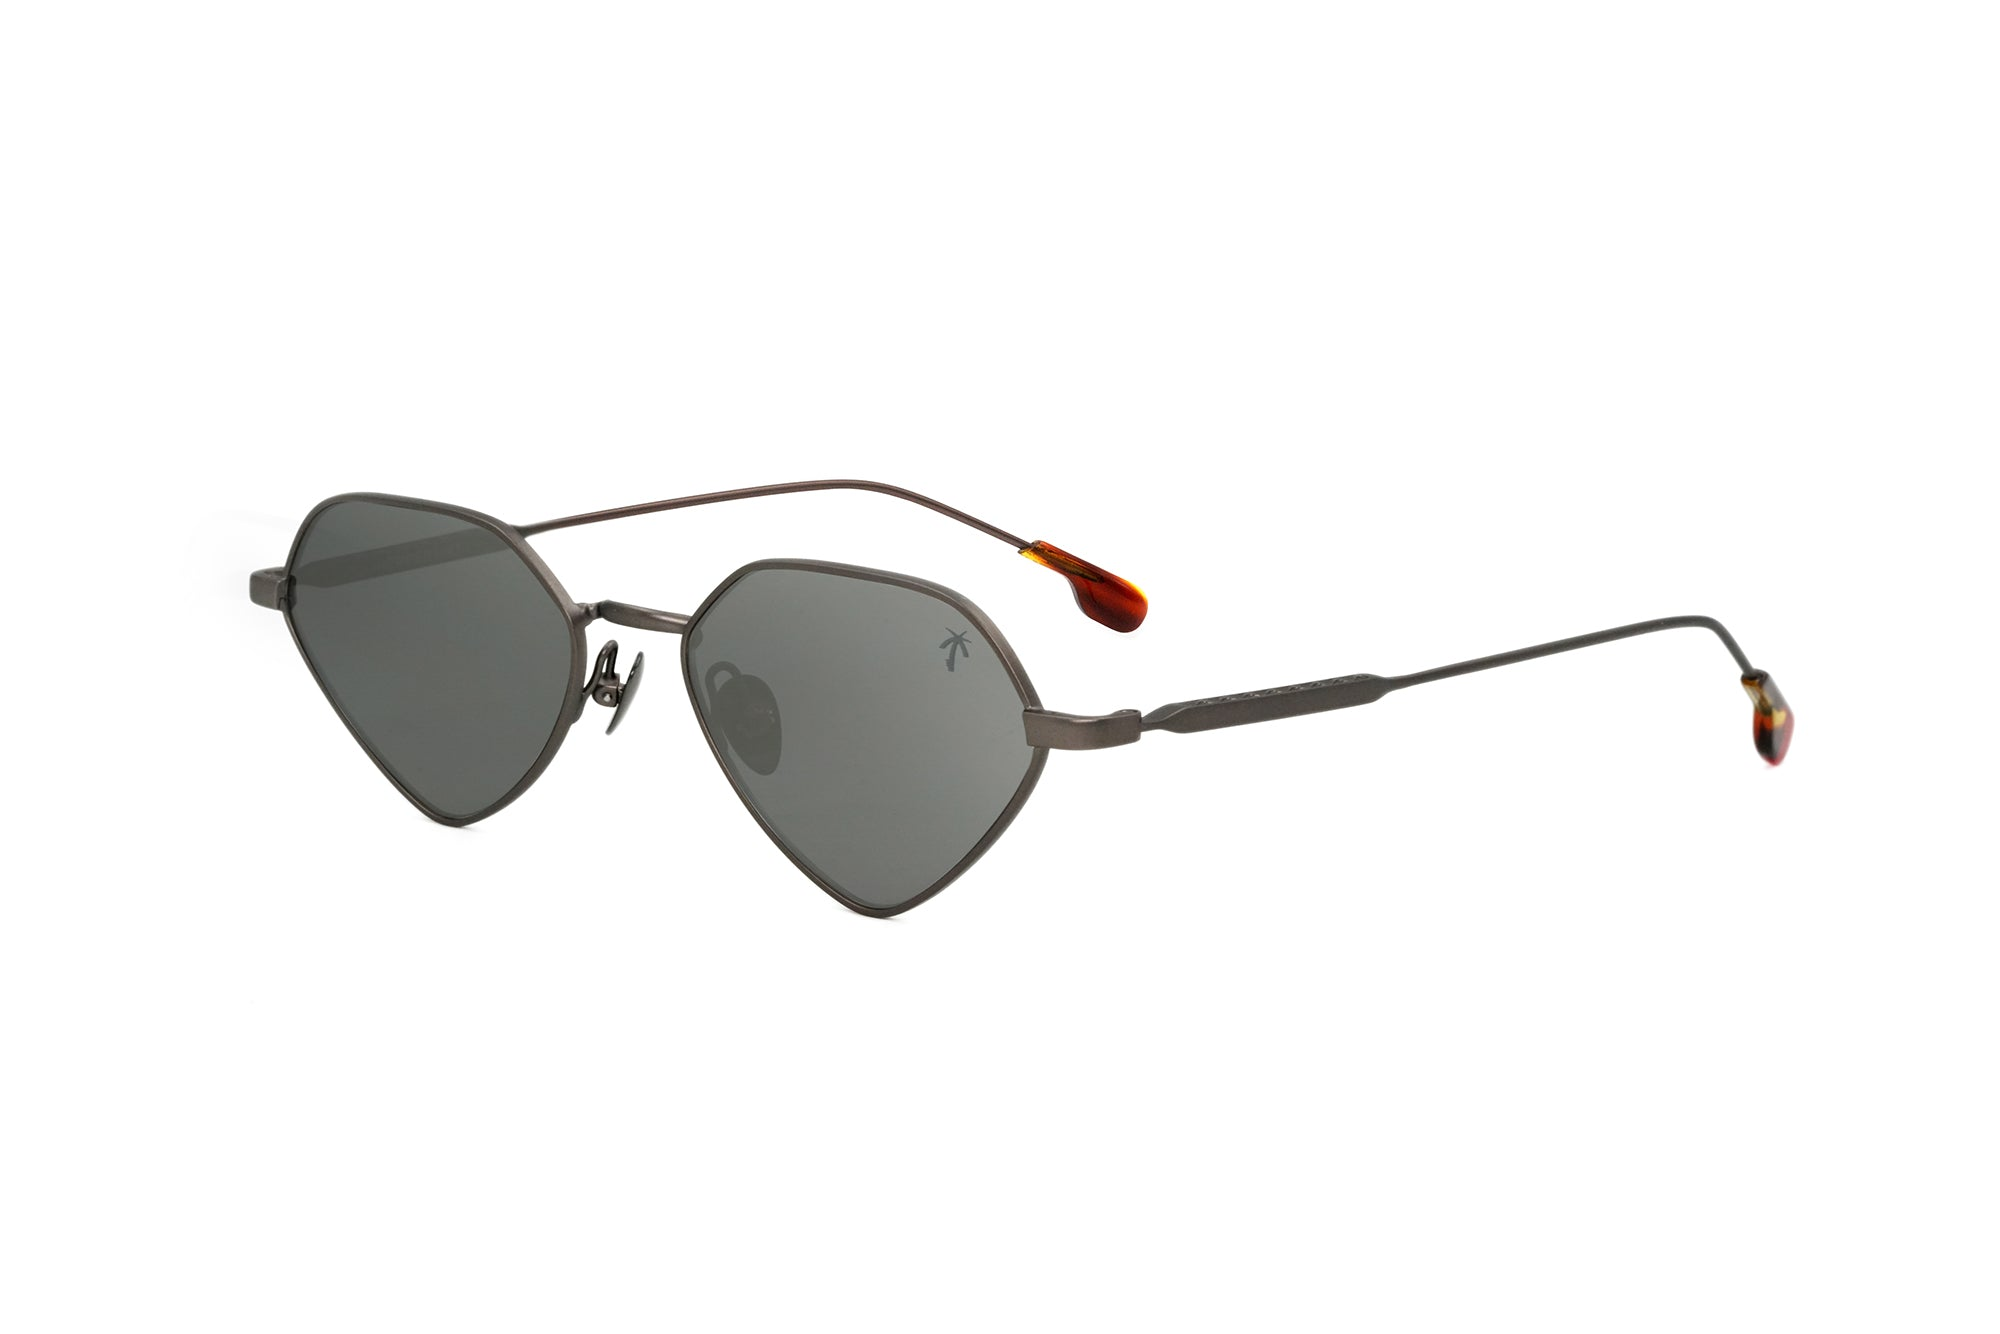 Bundy in Gun metal - Peppertint - Designer sunglasses